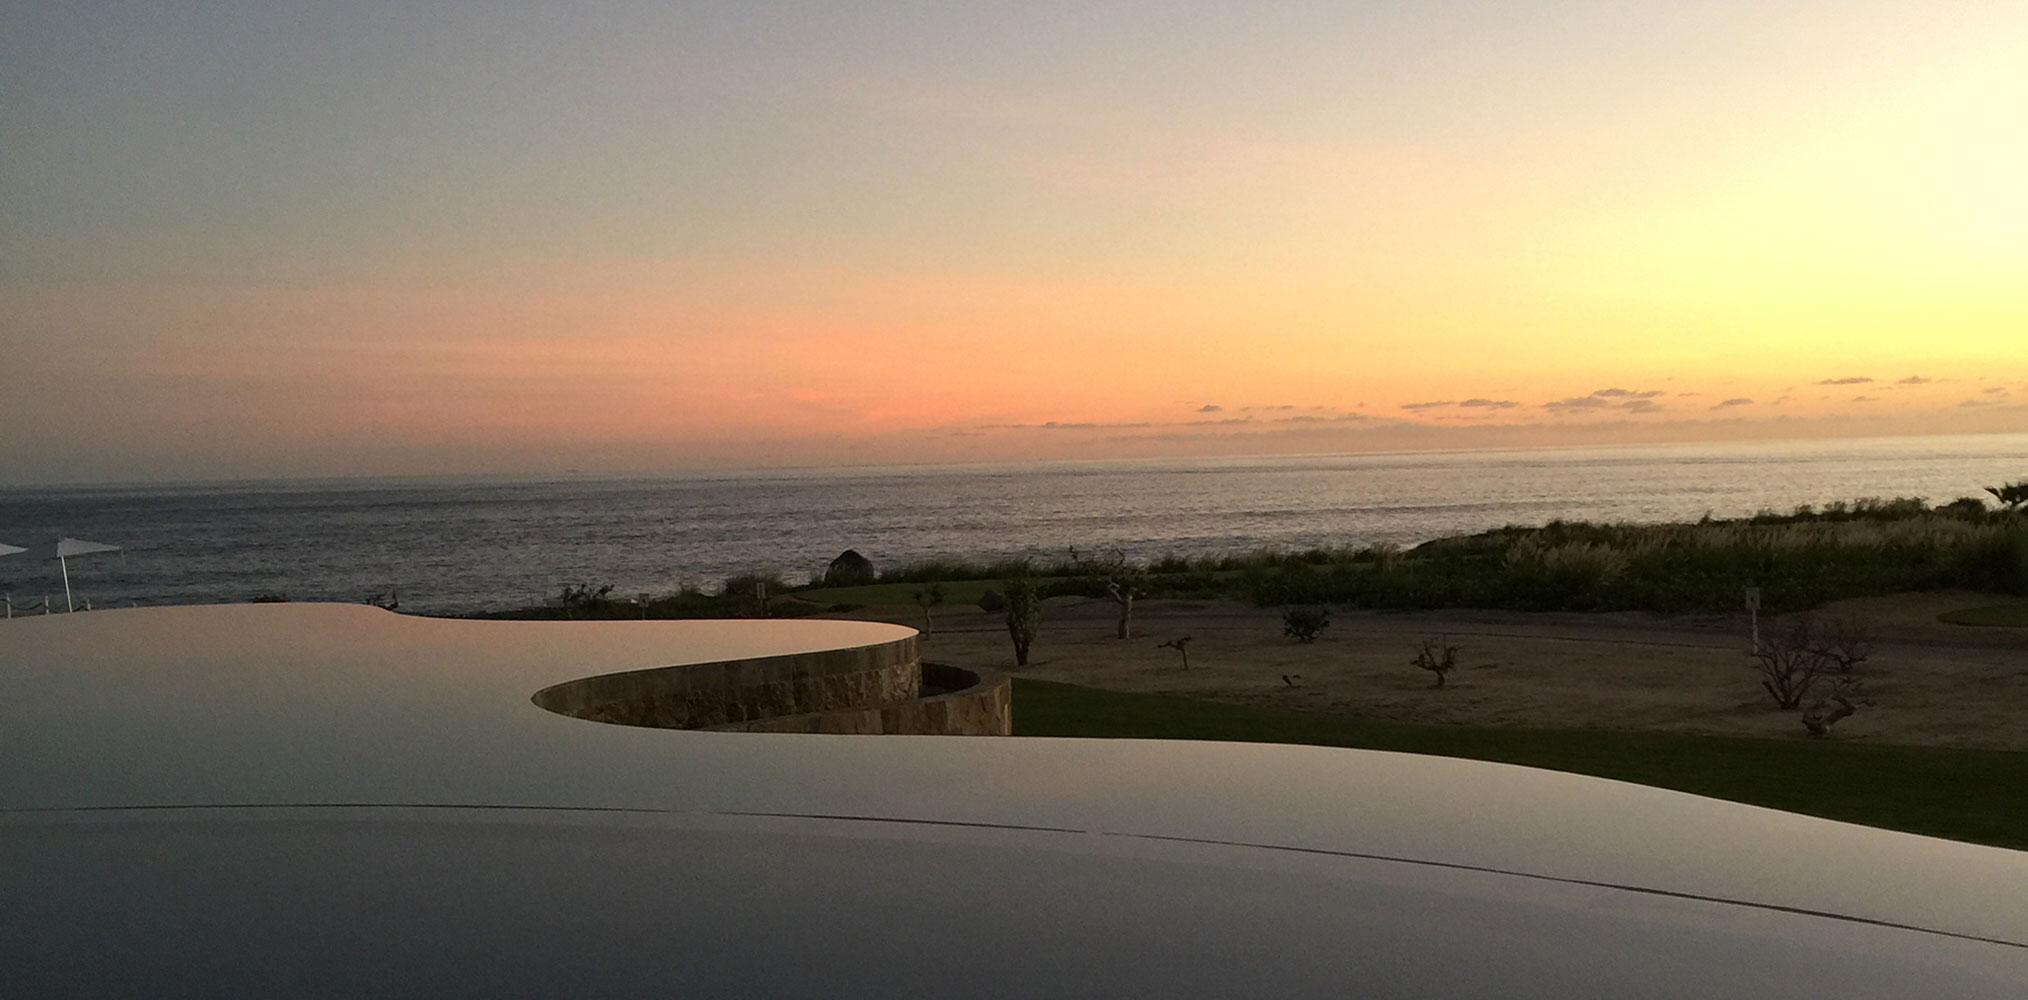 Sunset overlooking an infinity pool and the ocean